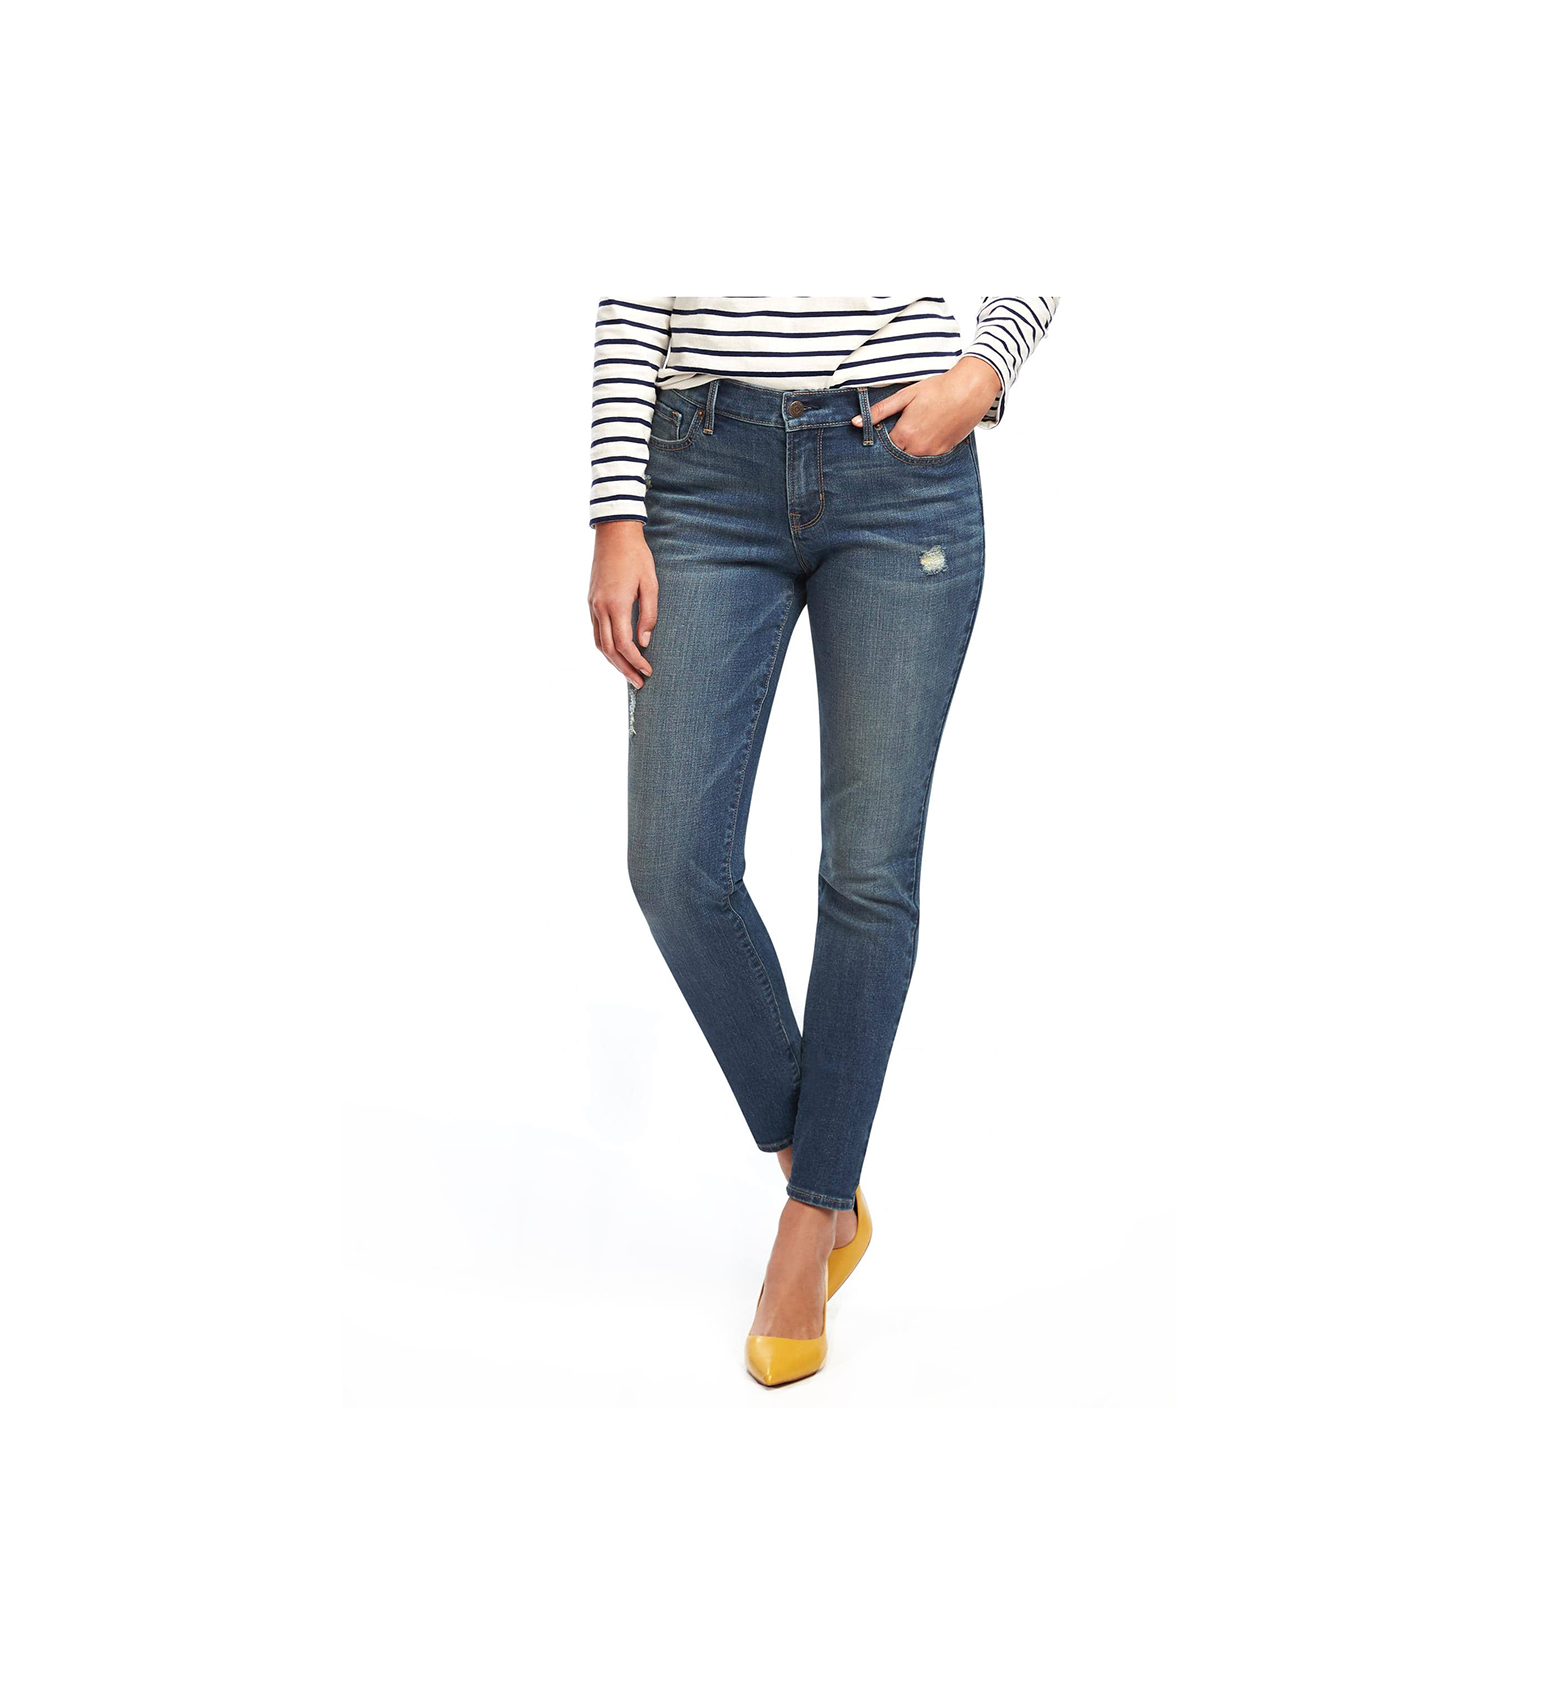 Best Fitting Jeans For Your Shape For Under 70 Real Simple